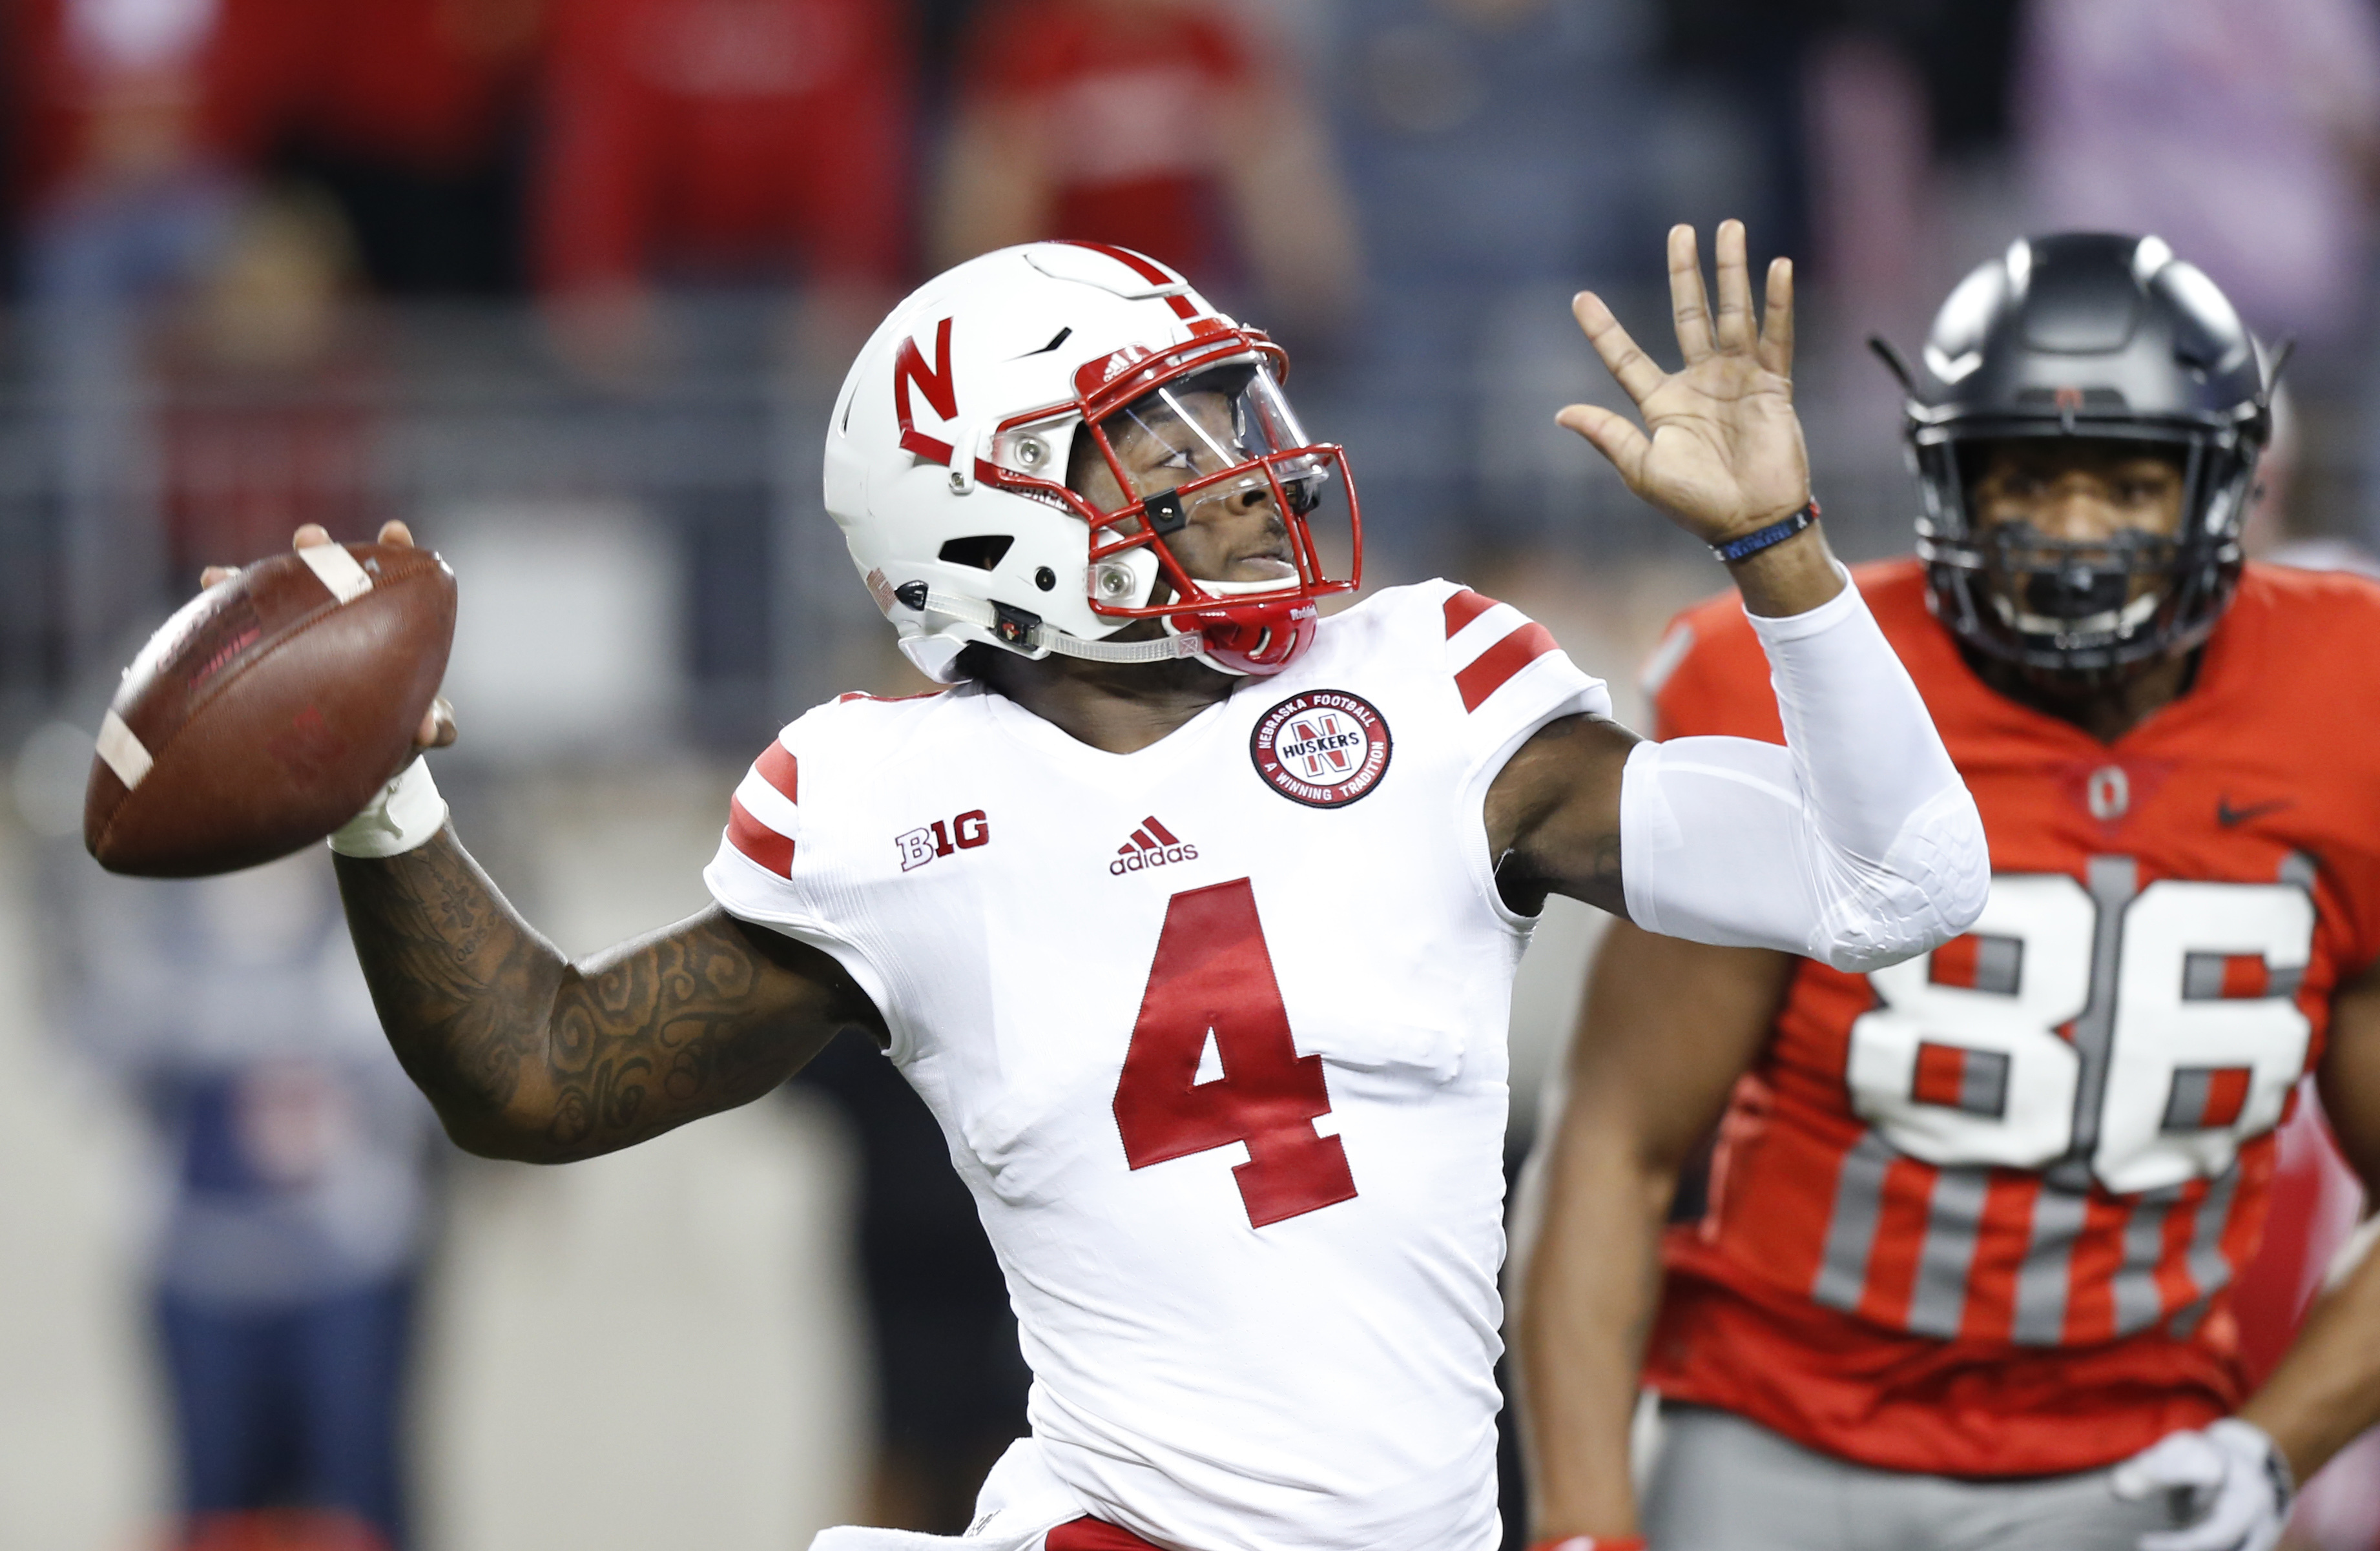 Nebraska quarterback Tommy Armstrong throws a pass against Ohio State during the first half of an NCAA college football game Saturday, Nov. 5, 2016, in Columbus, Ohio. (AP Photo/Jay LaPrete)